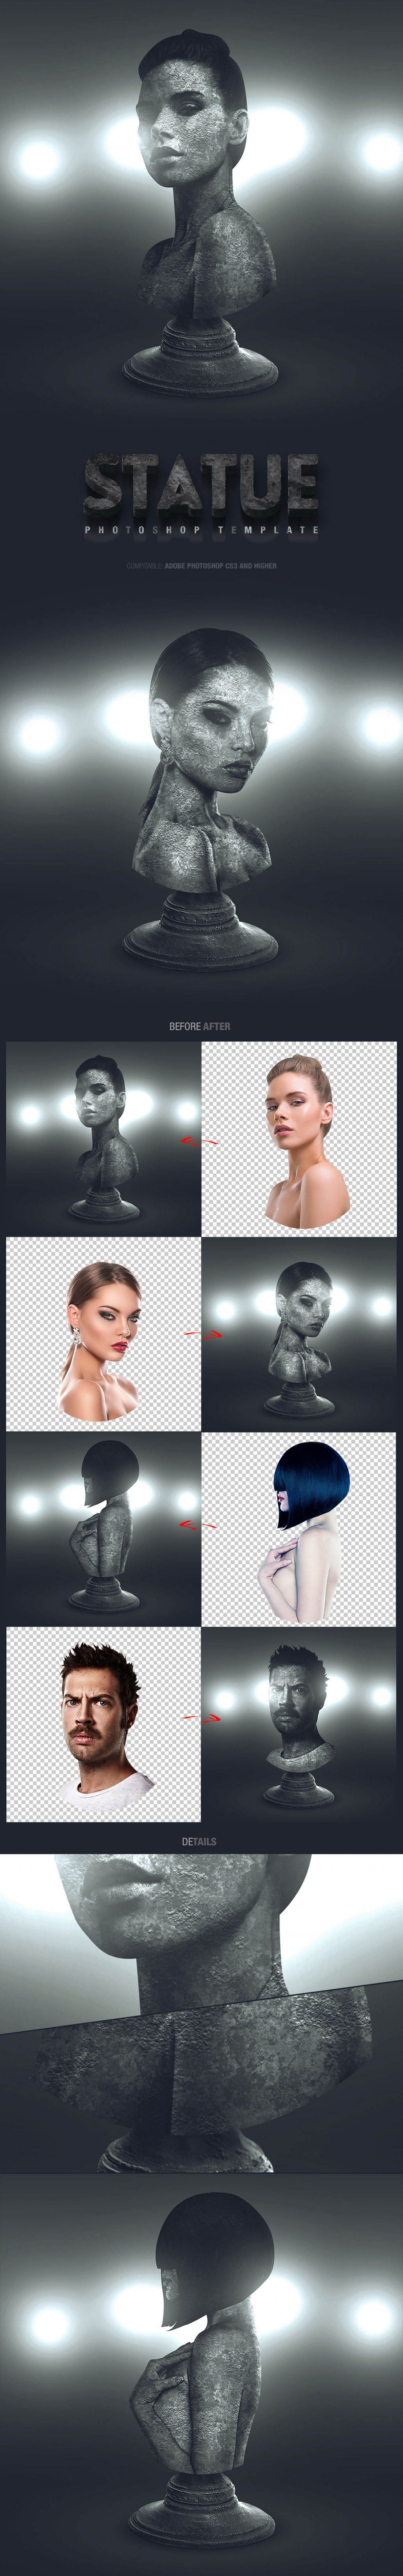 photoshop effects 2